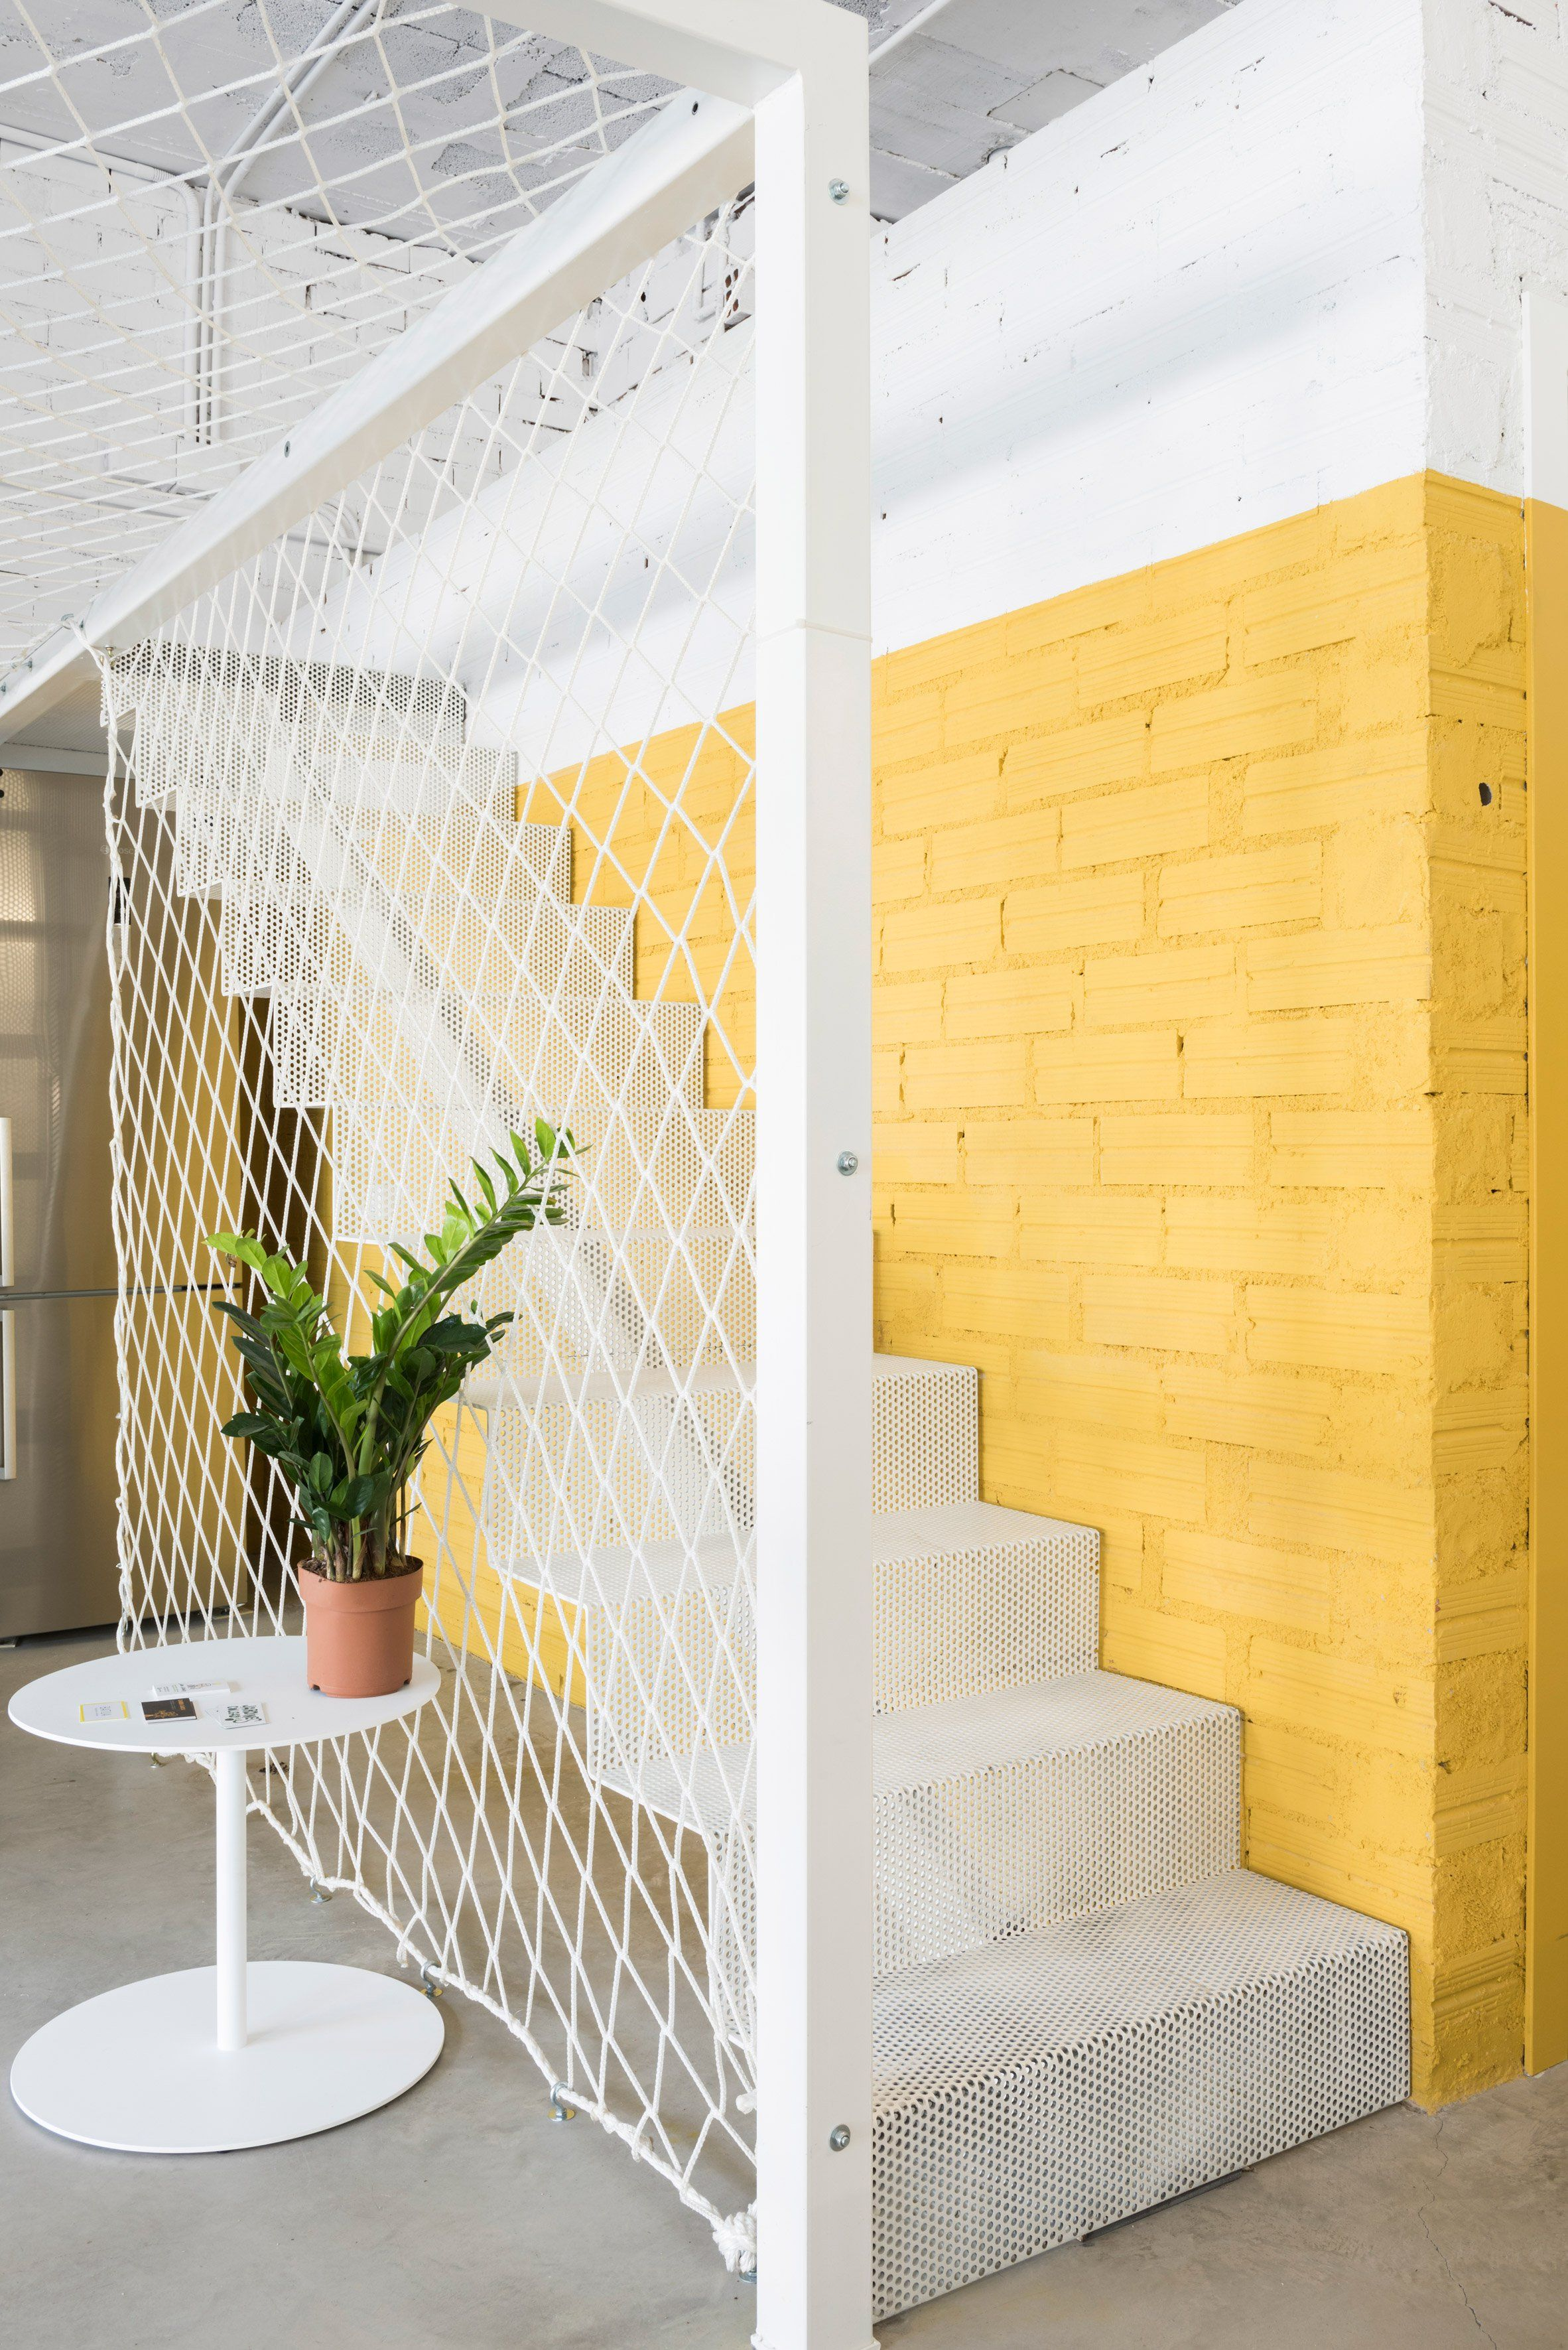 Coworking spaces in Barcelona showcase lowbudget